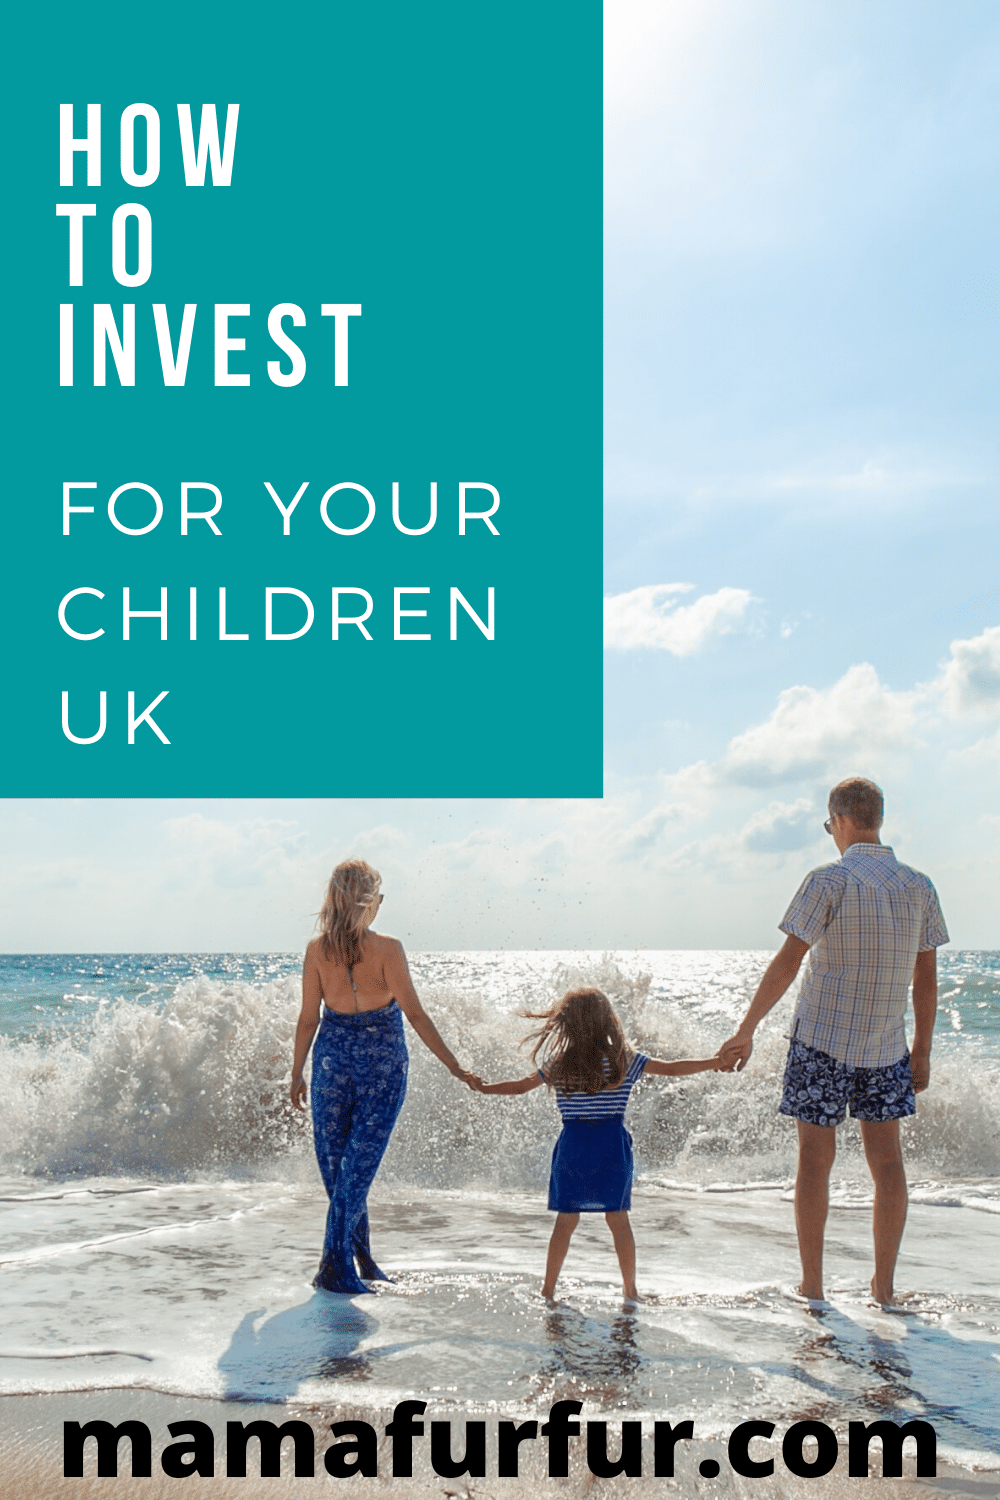 How to invest for your Children UK - Pensions, Investment ISAs and Savings for their future